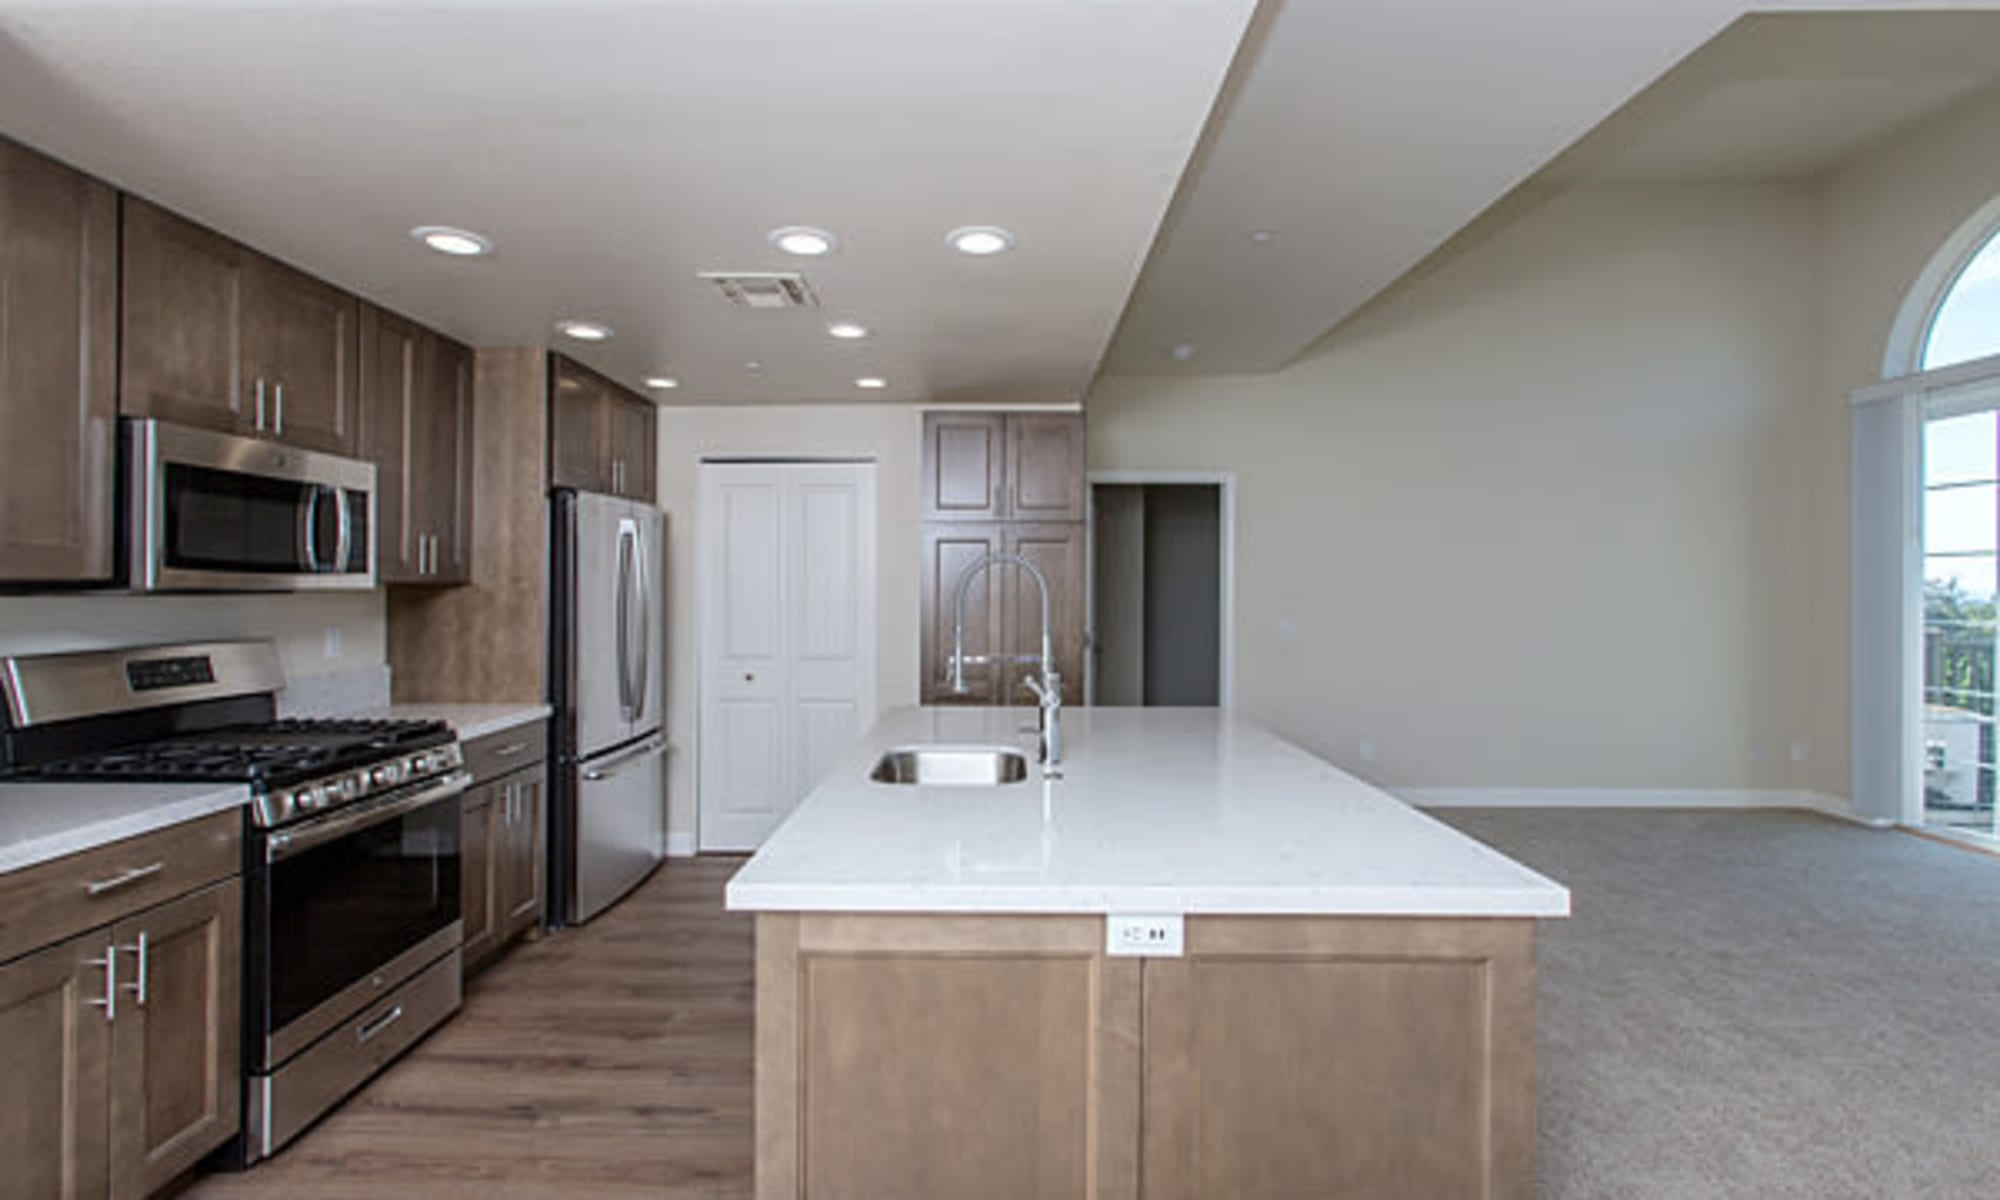 kitchens with granite counter top islands at The Boulders at Fountaingrove